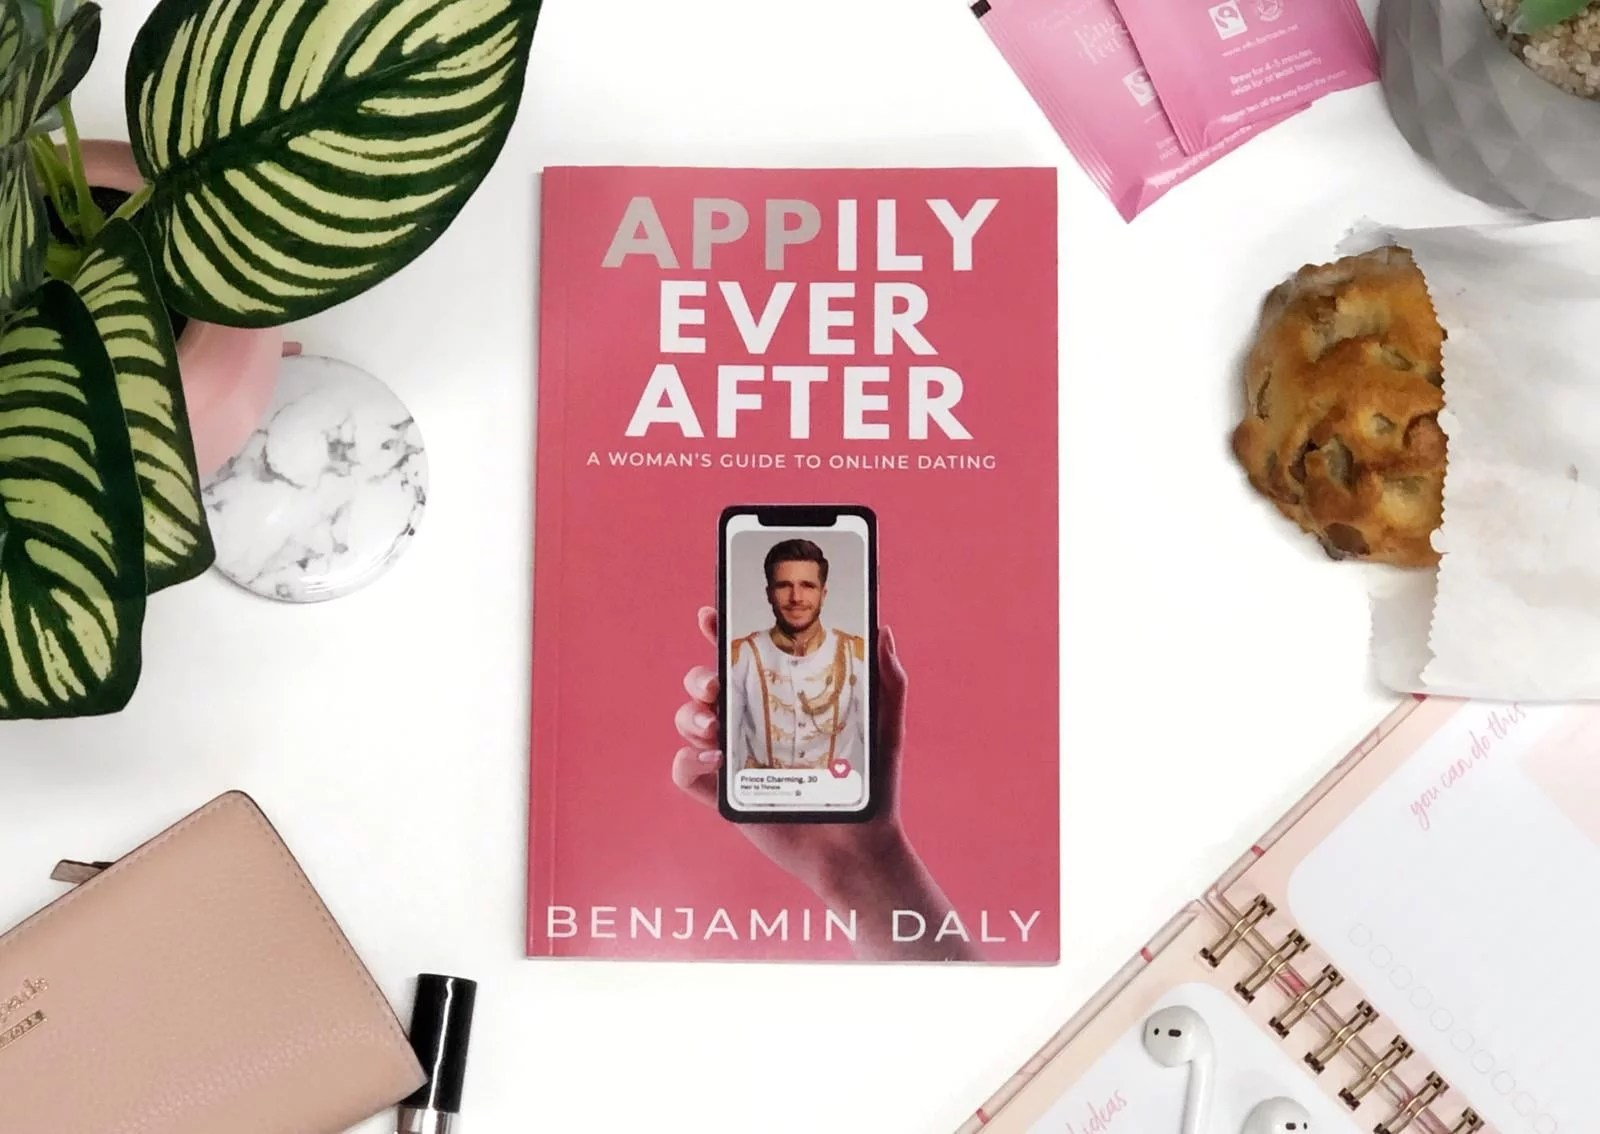 I Tried This Dating Hack From the Appily Ever After Guide, and It Worked Immediately